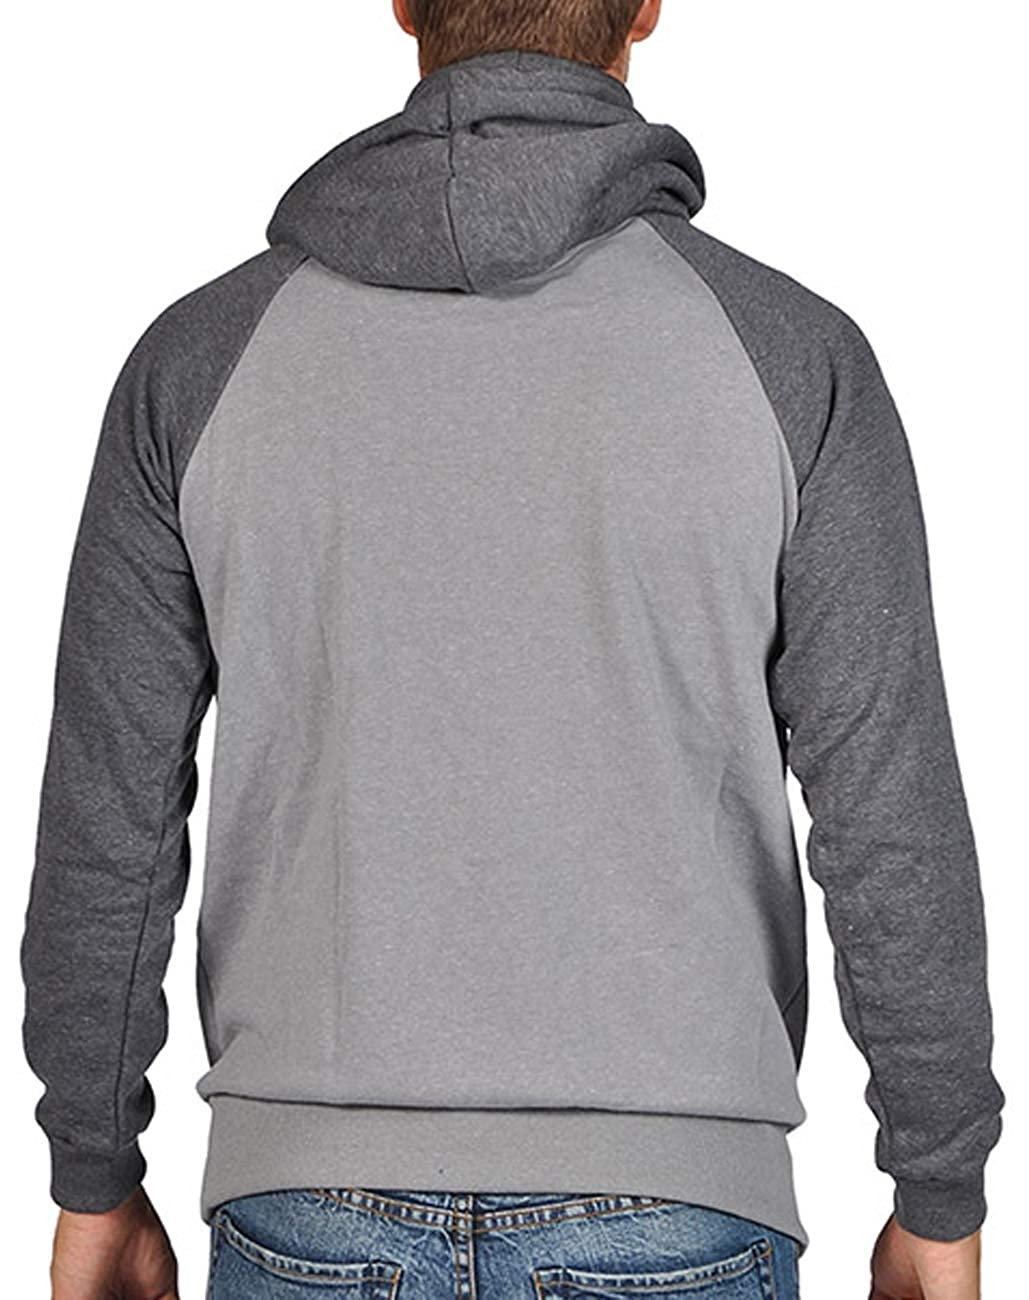 29631839a93 Amazon.com  ARSNL Men s Two Tone Ninja Hoodie - Heather Grey Charcoal   Clothing